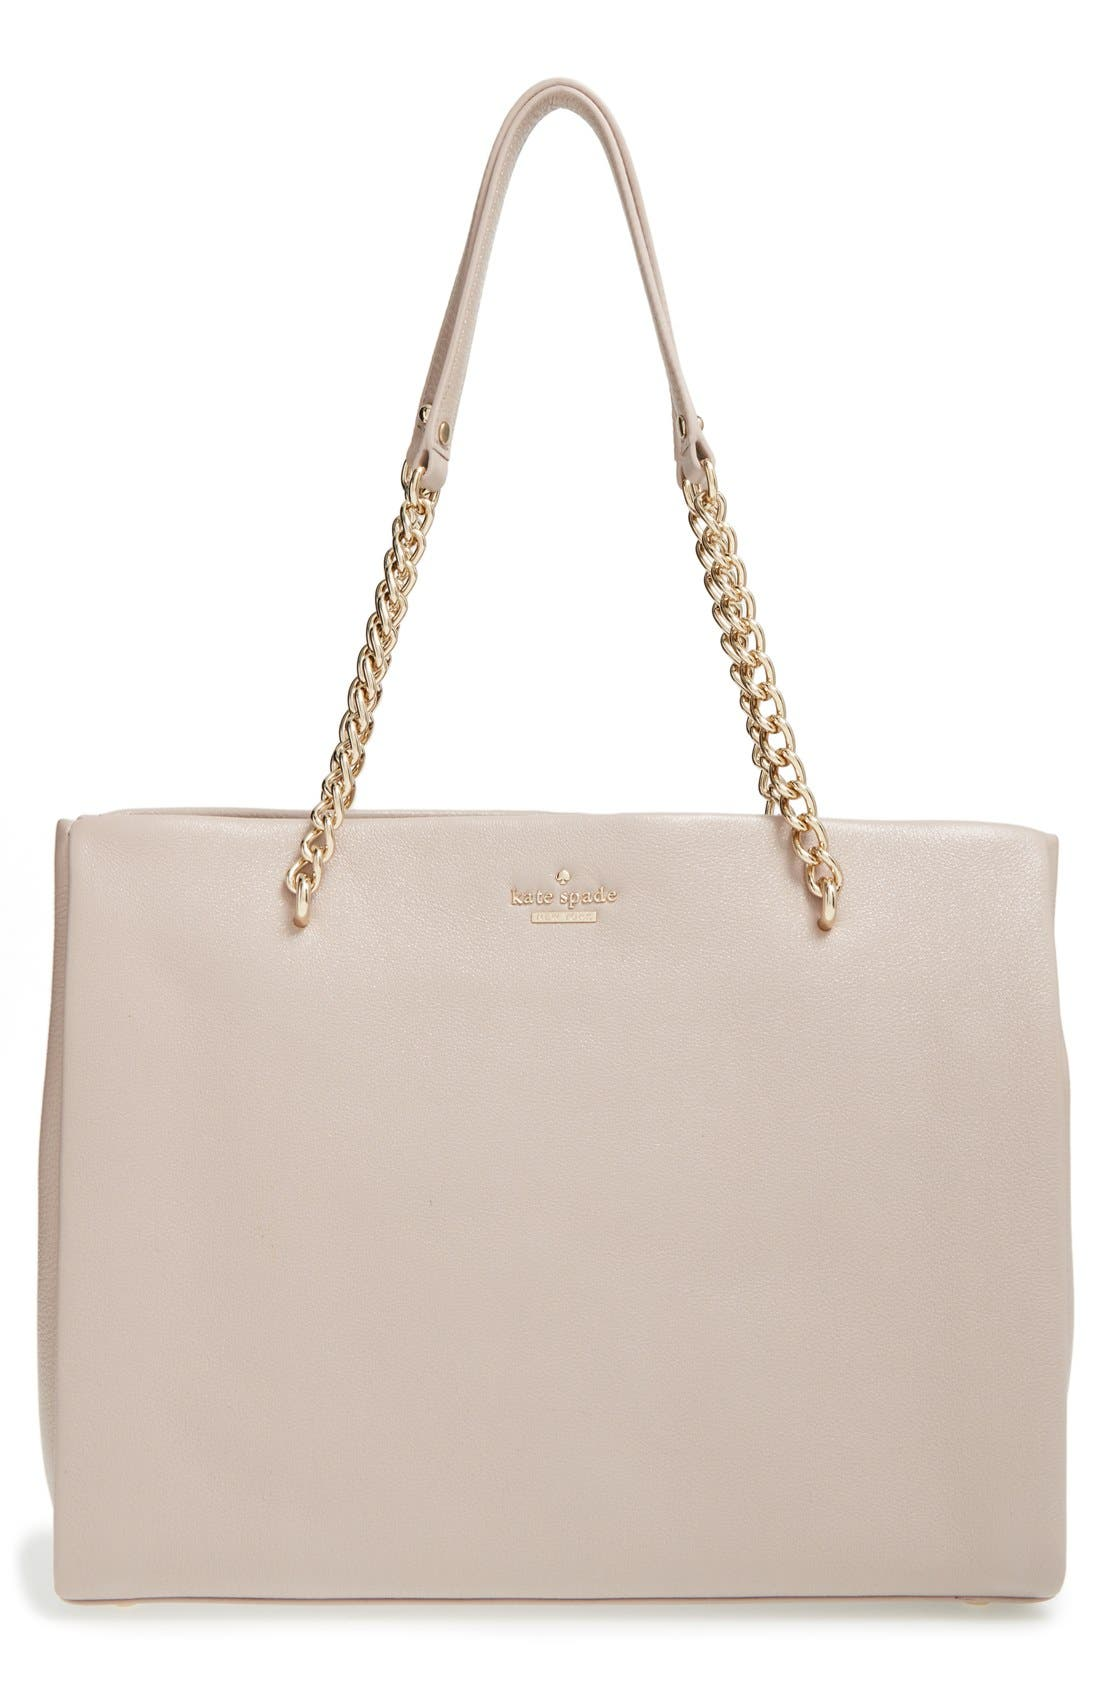 Main Image - kate spade new york 'emerson place - smooth phoebe' leather shoulder bag